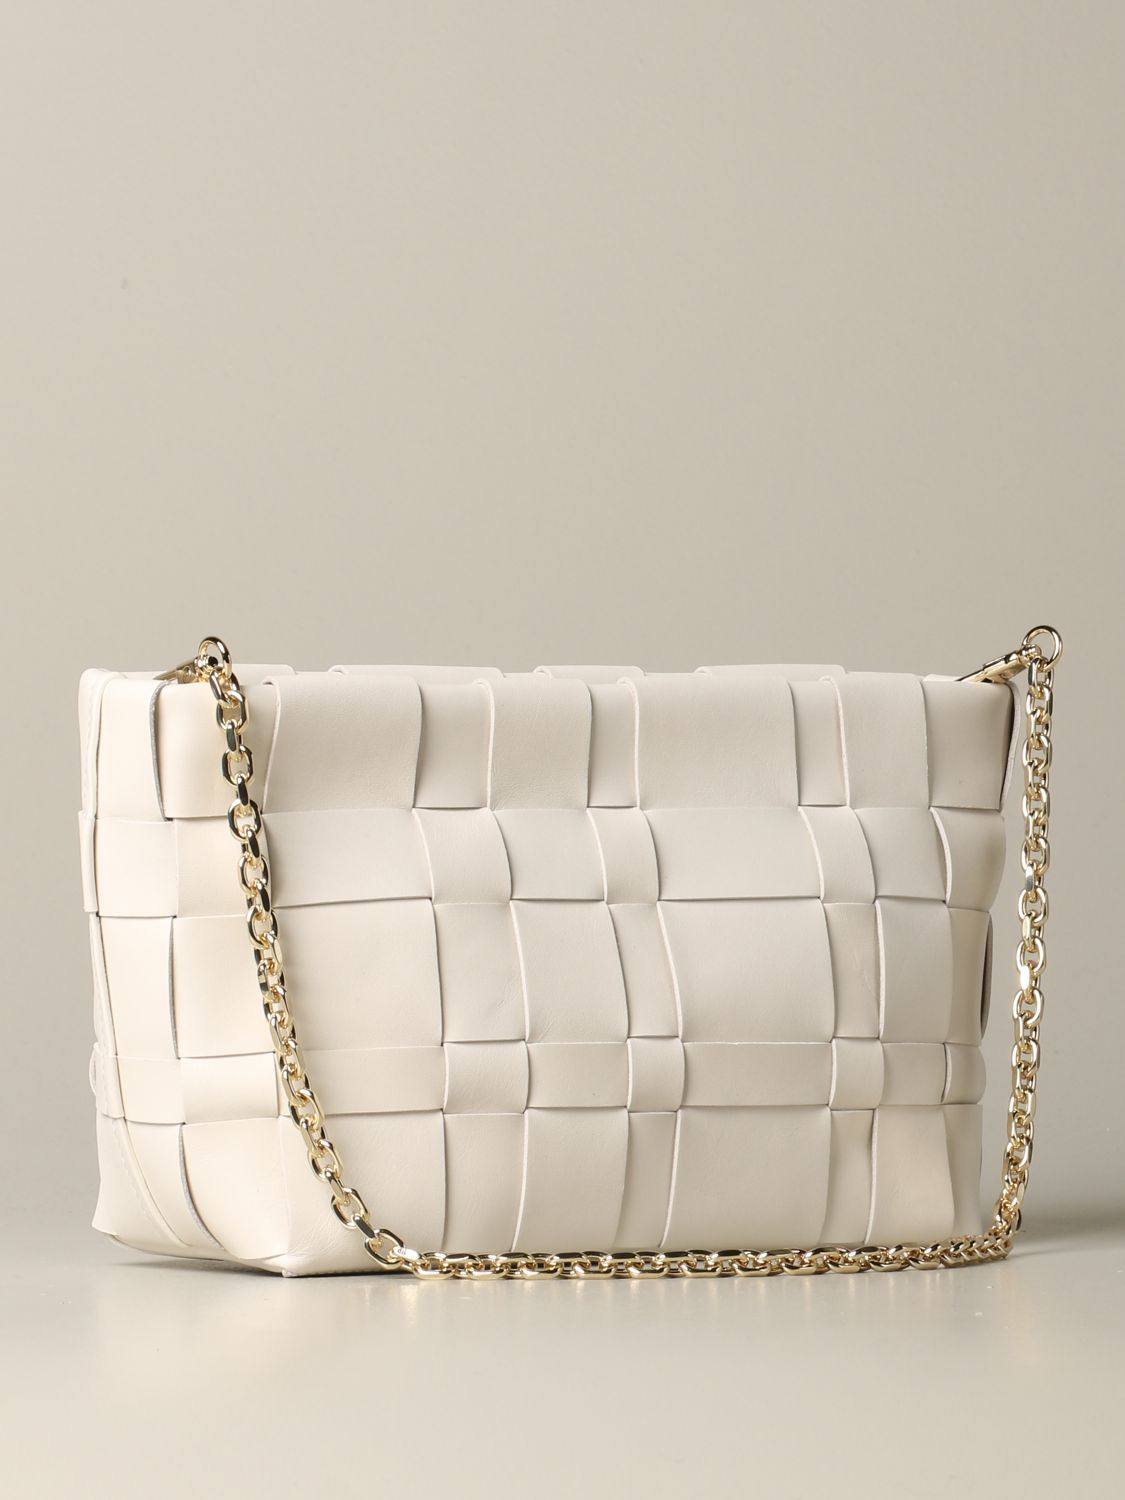 Shoulder bag 3.1 Phillip Lim: Shoulder bag women 3.1 Phillip Lim white 2